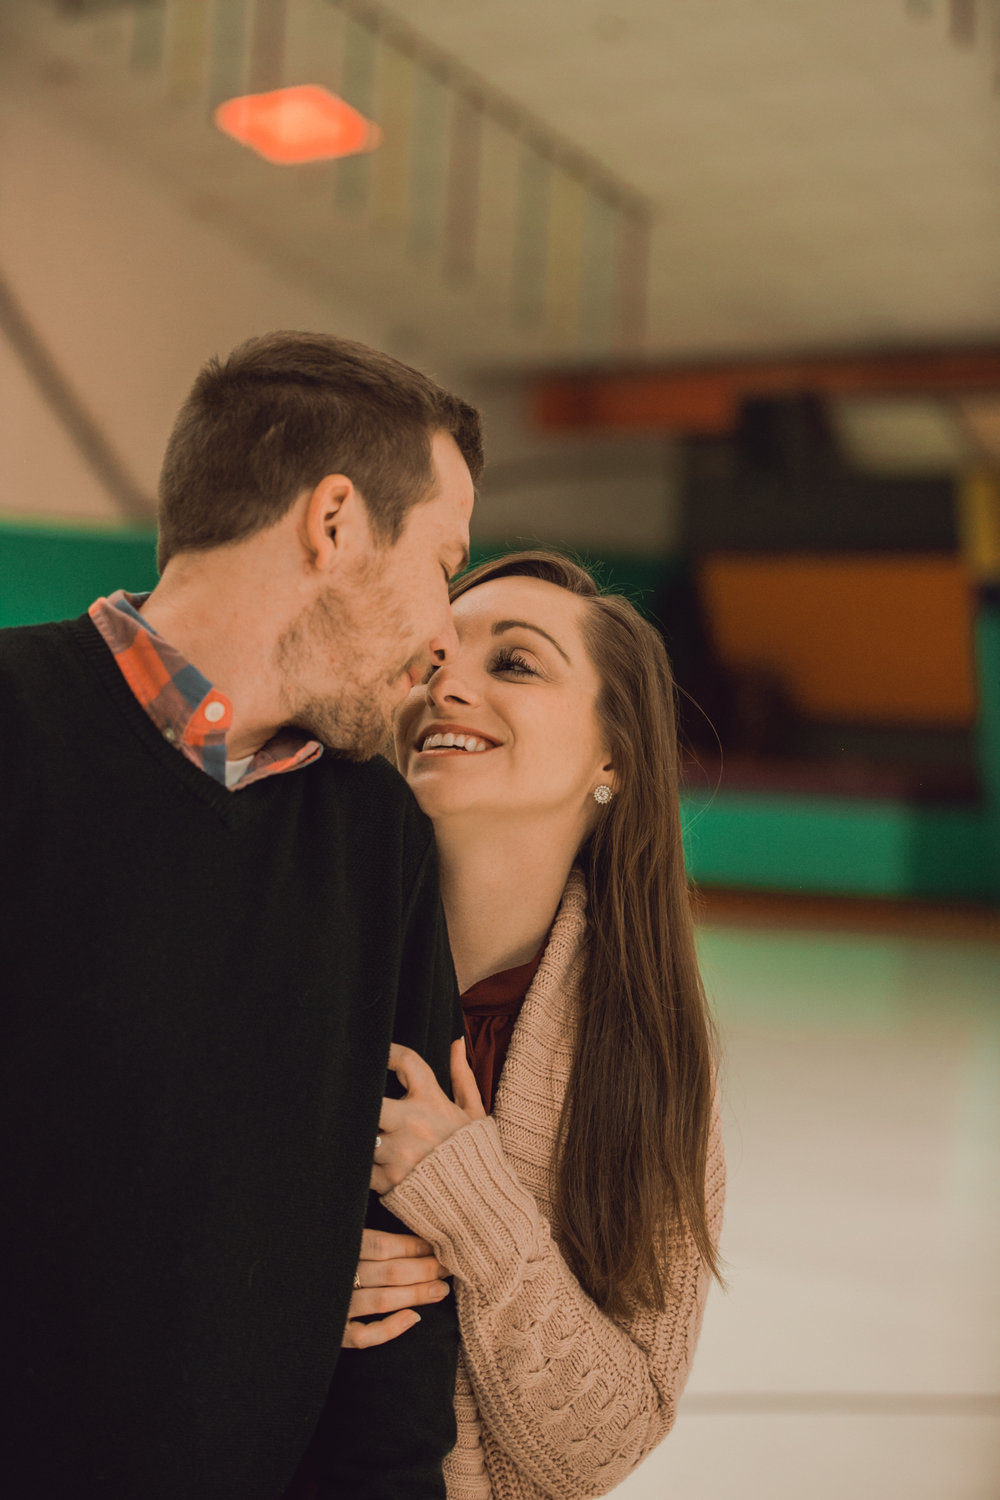 roller rink engagement session, wooddale fun zone engagement session, roller skate engagement session, minneapolis cafe lucrat engagment session, cafe lucrat engagement session, minneapolis minnesota engagement session-www.rachelsmak.com16.jpg